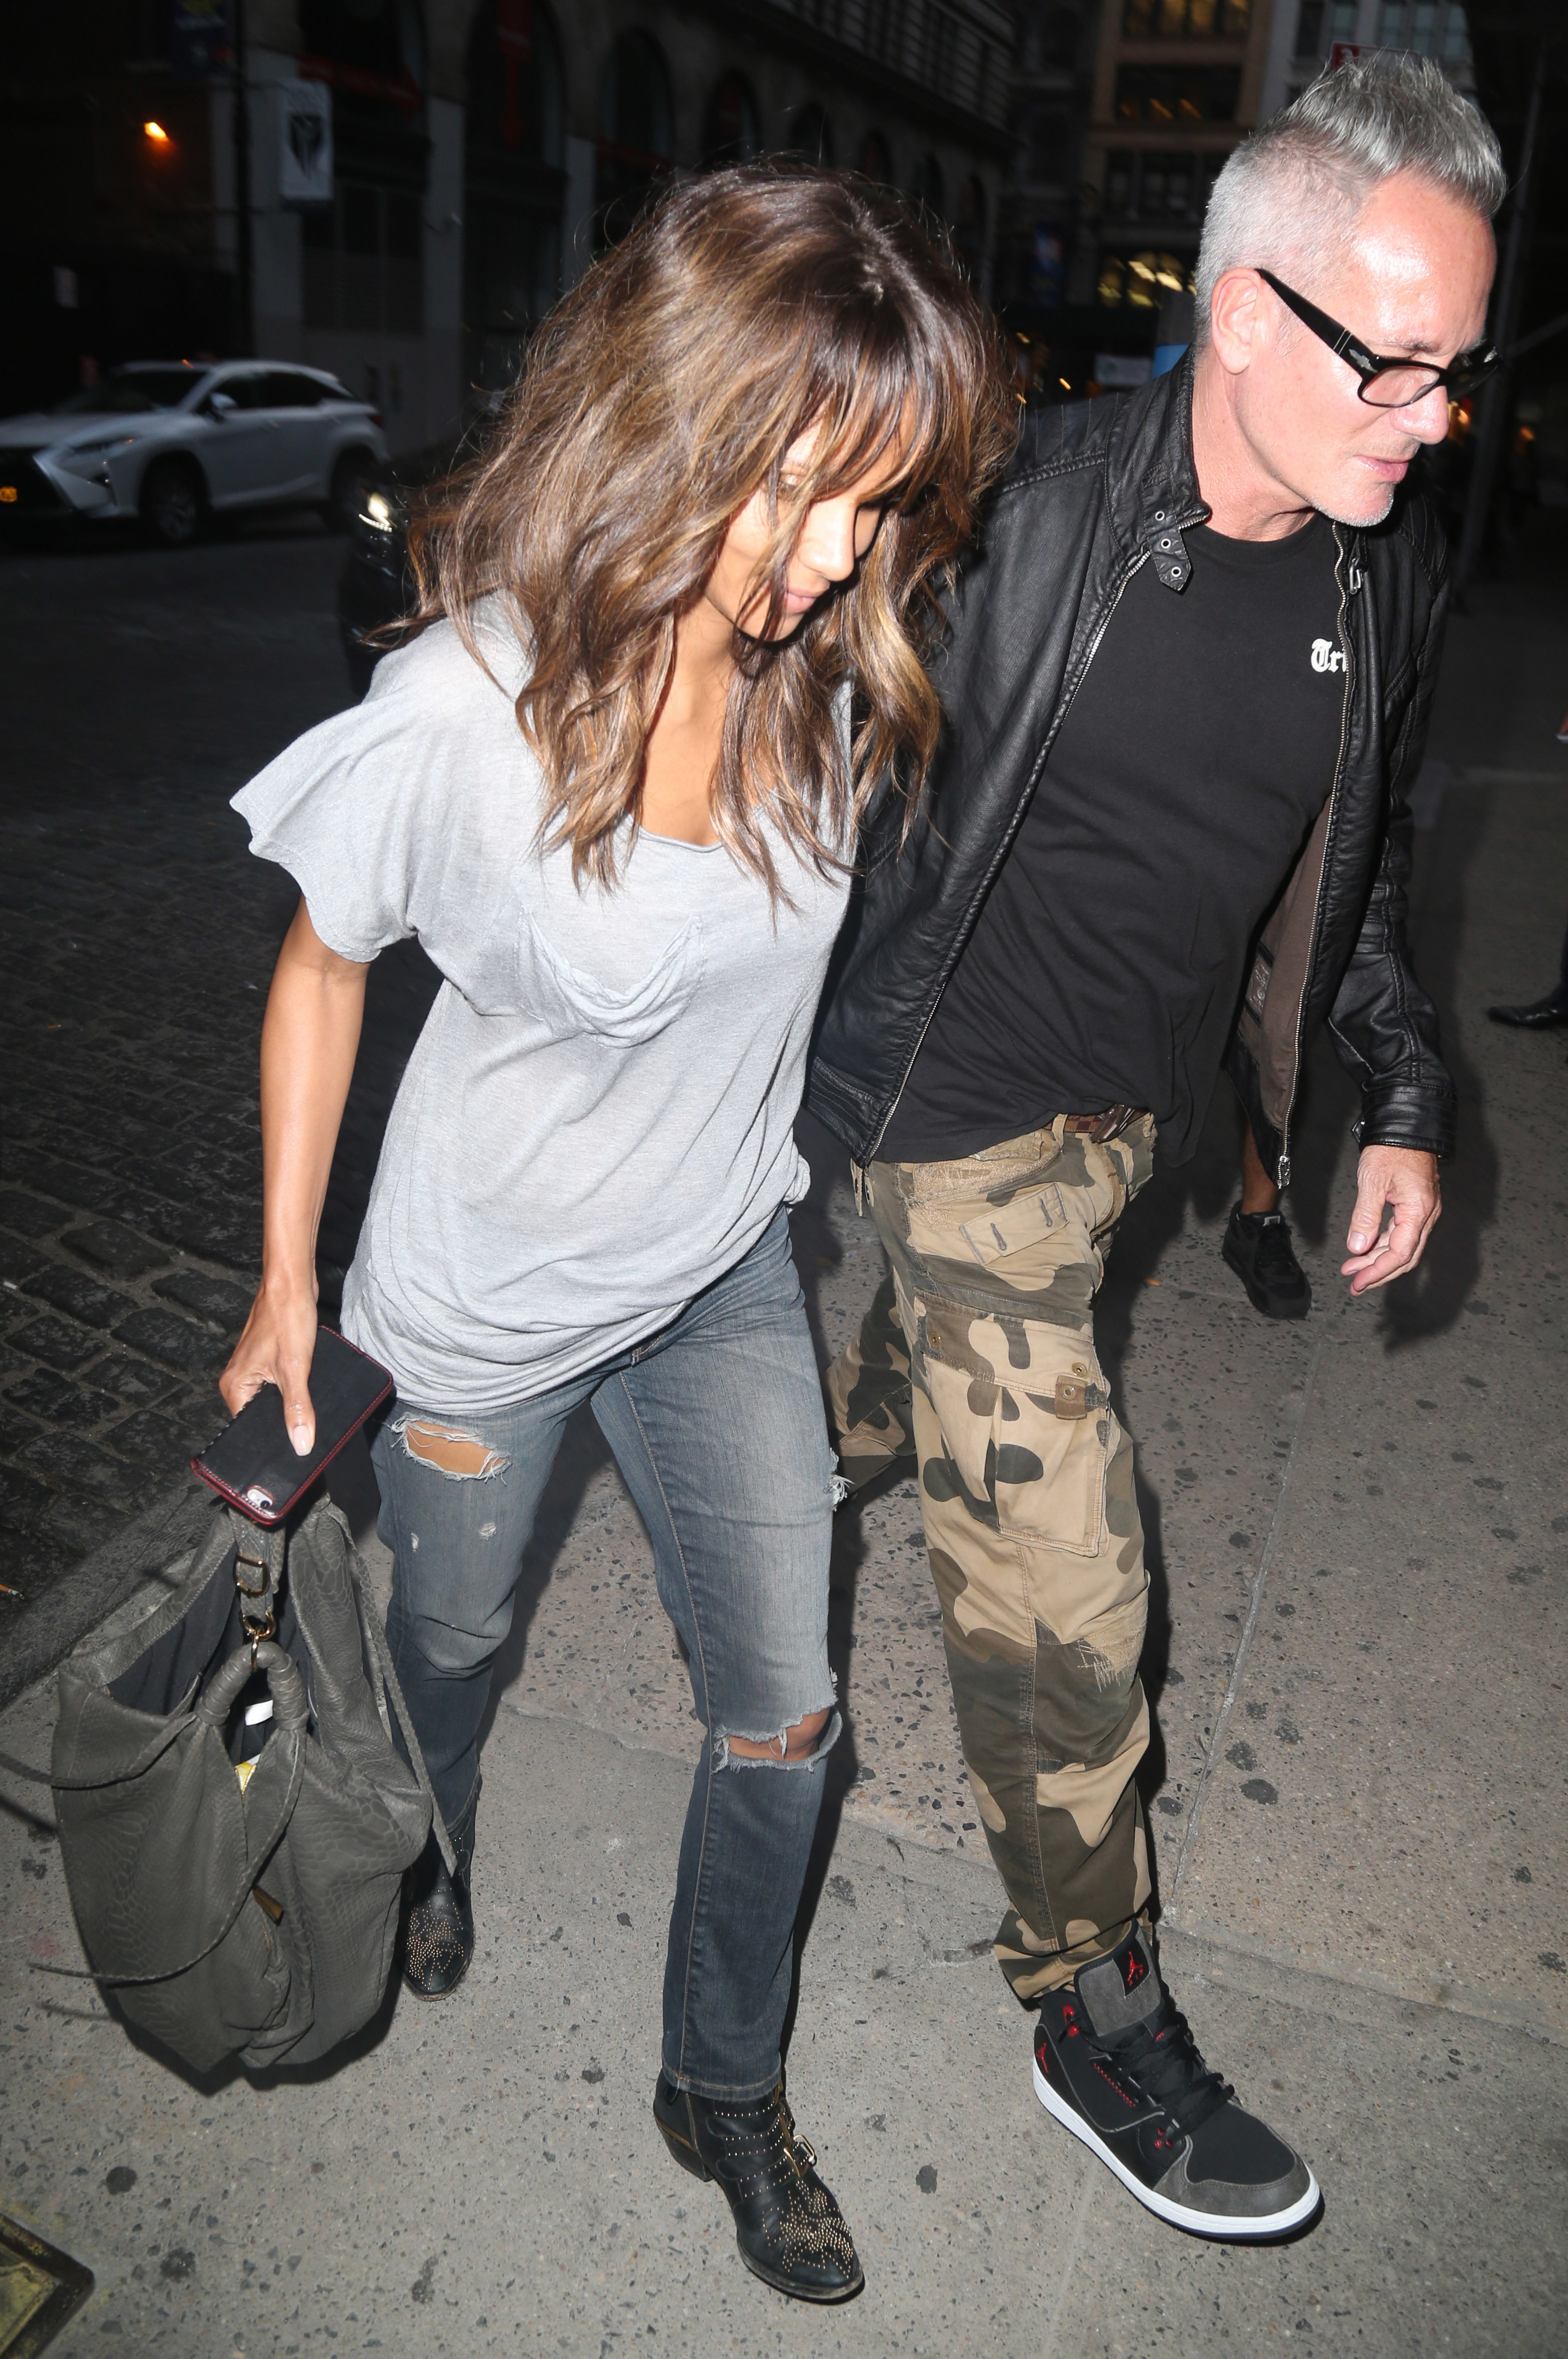 Halle Berry steps out with a mystery man in NYC